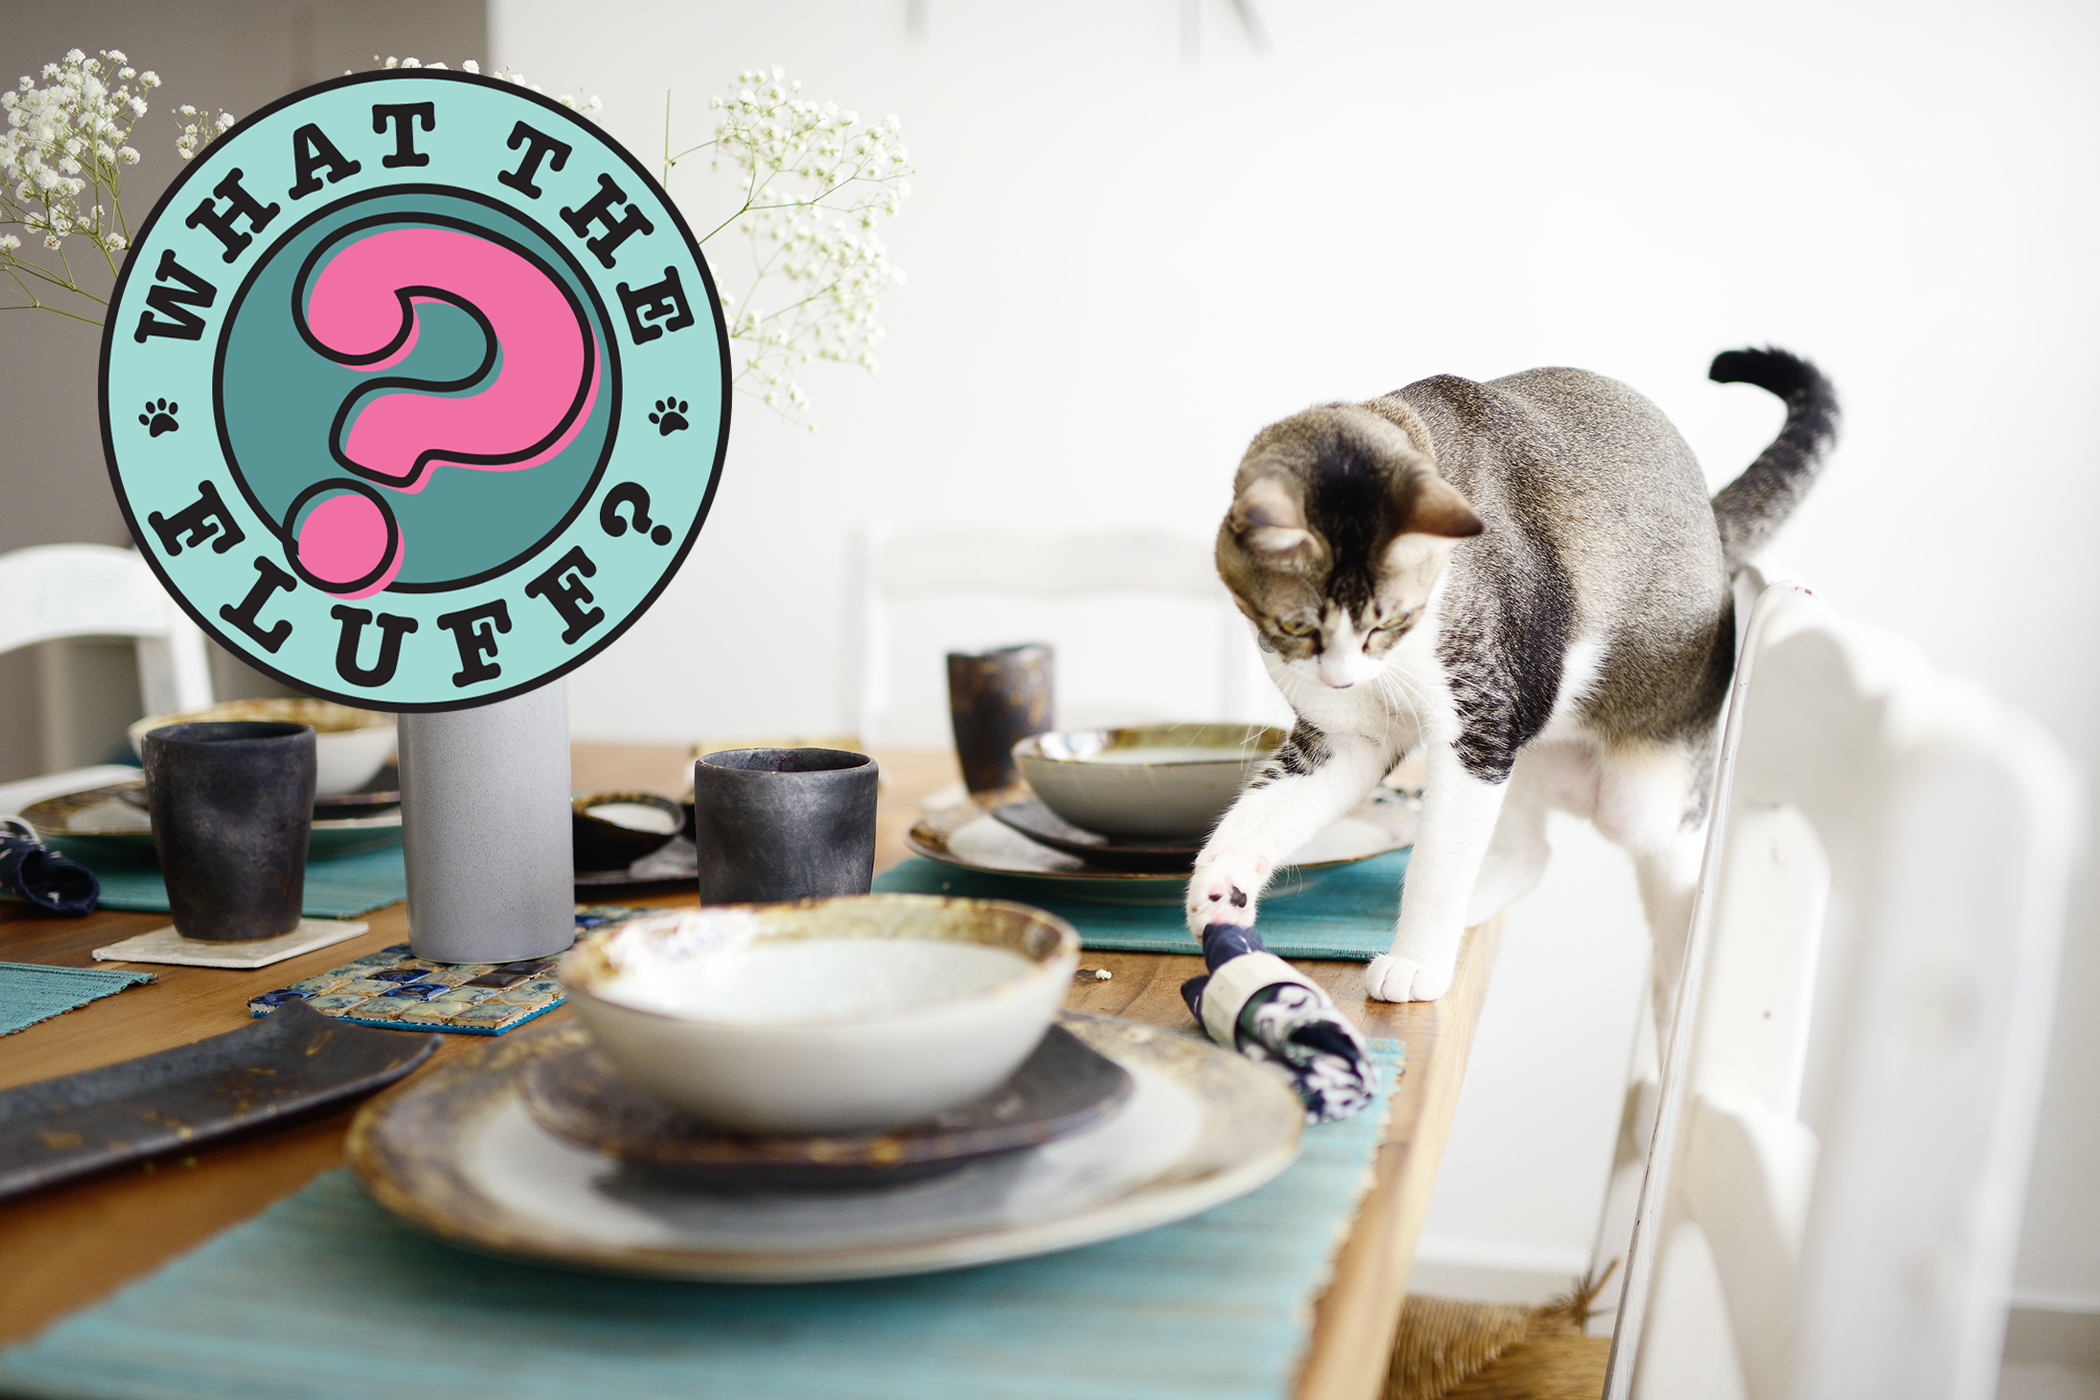 Grey and white cat uses paw to push rolled napkin off set table with What the Fluff logo